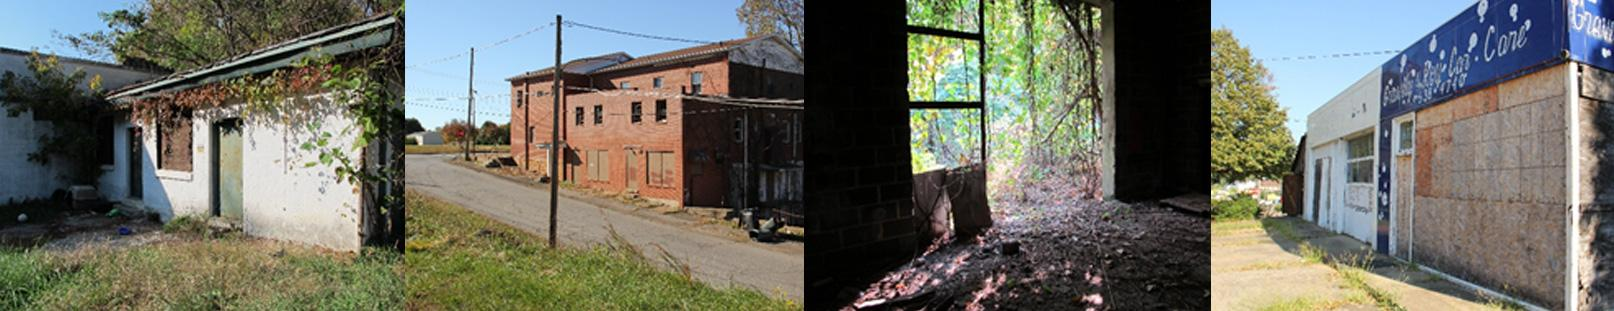 Brownfield Images